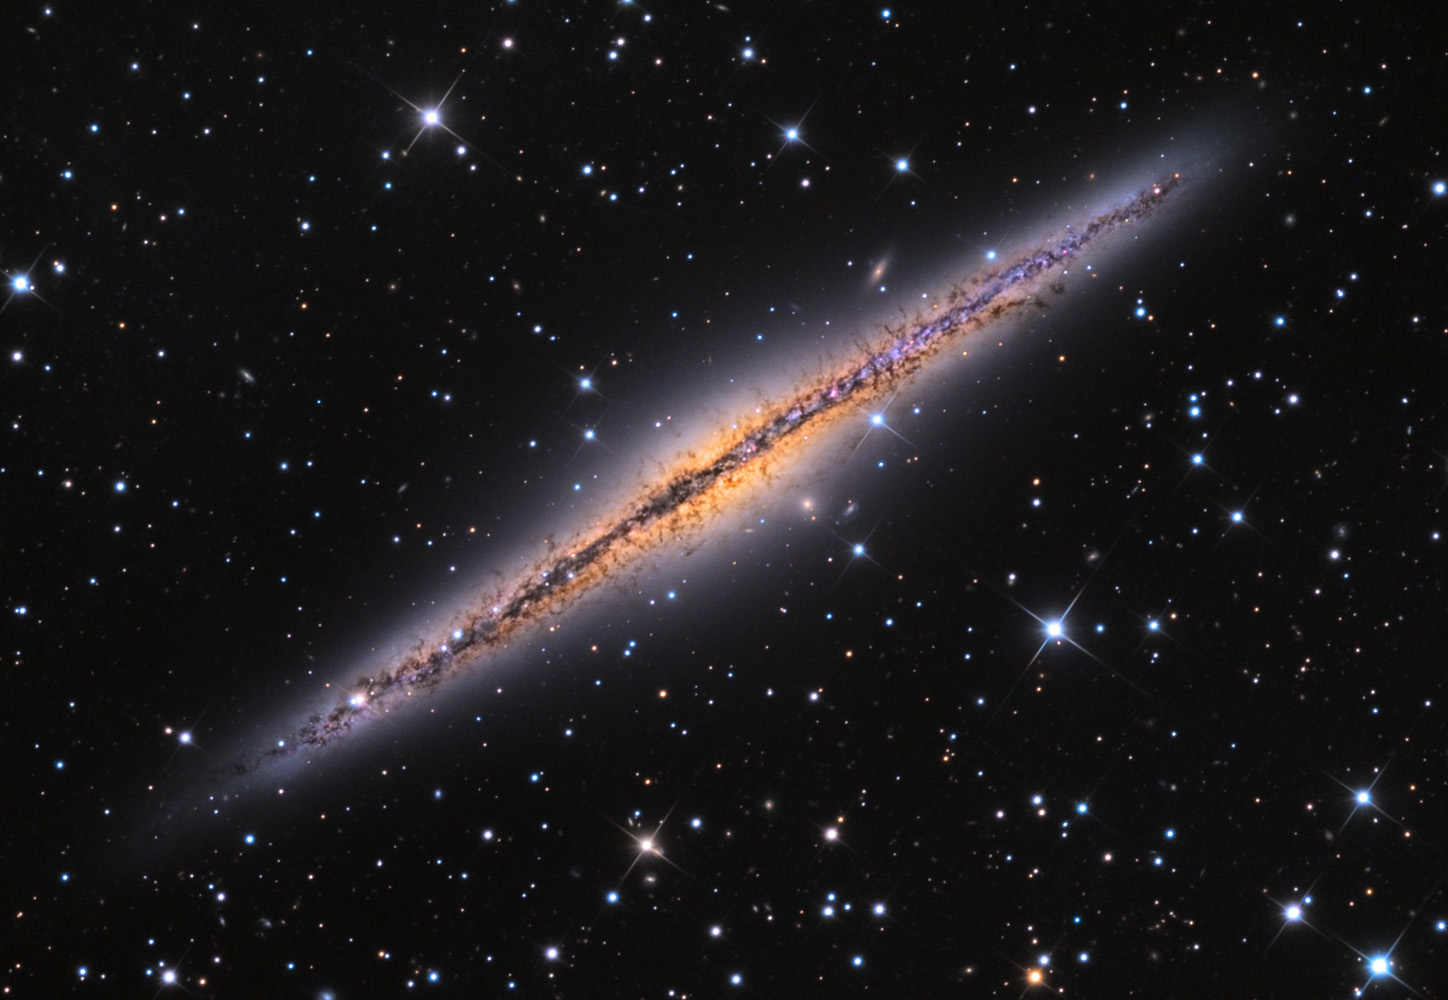 APOD: 2013 October 11 - NGC 891 Edge On